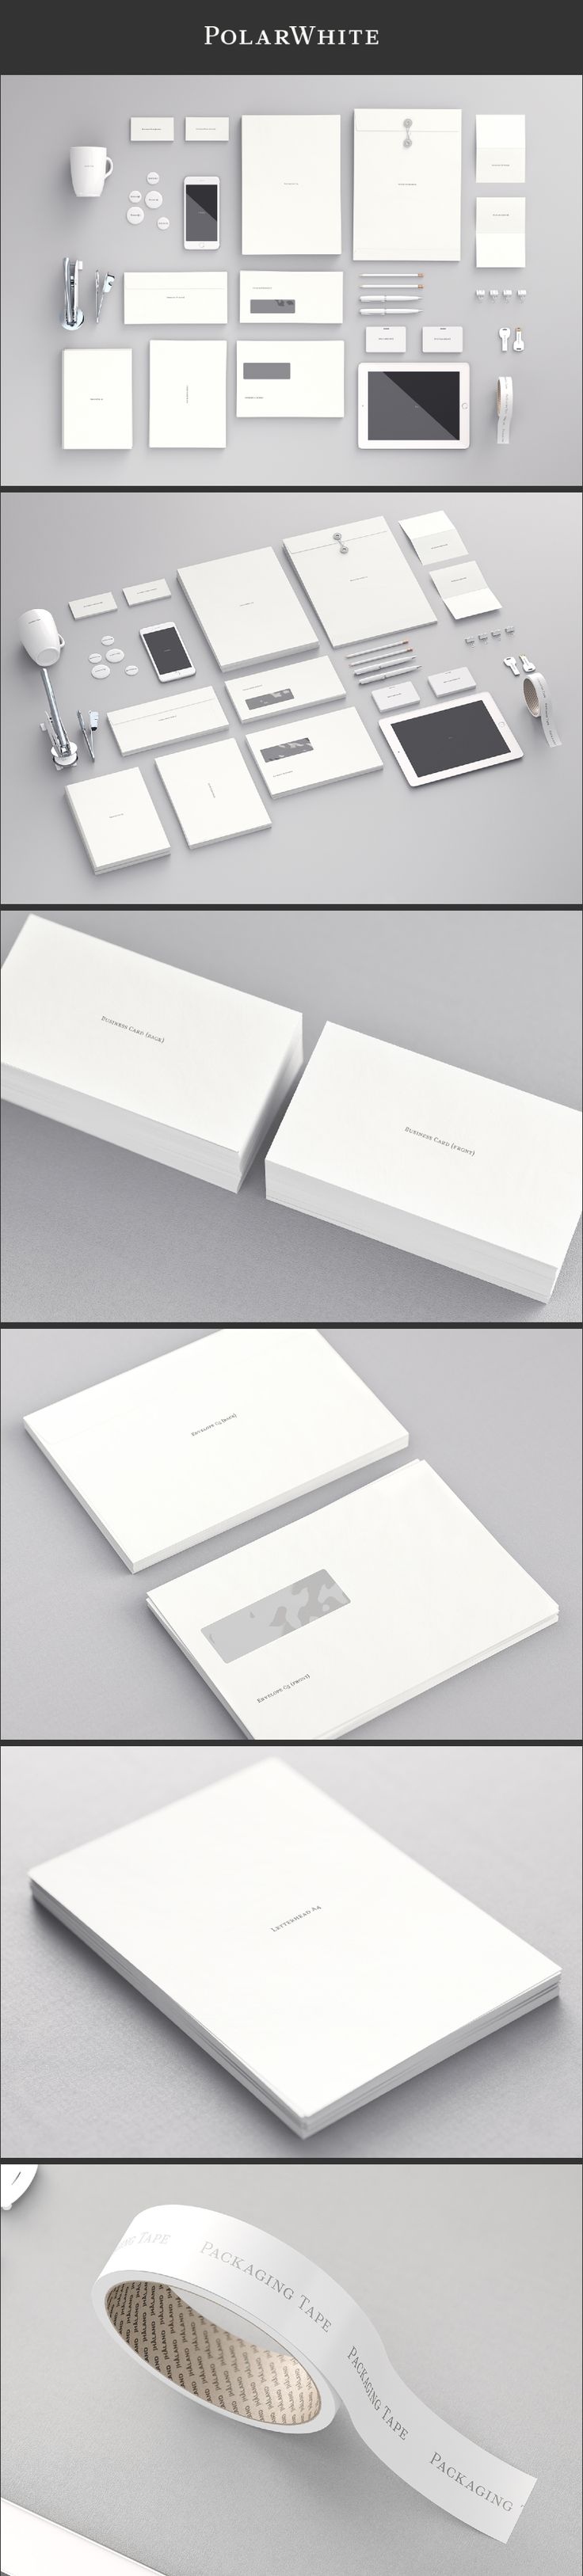 PolarWhite stationary by JHåland is a free MockUp collection for Photoshop CS6 and up